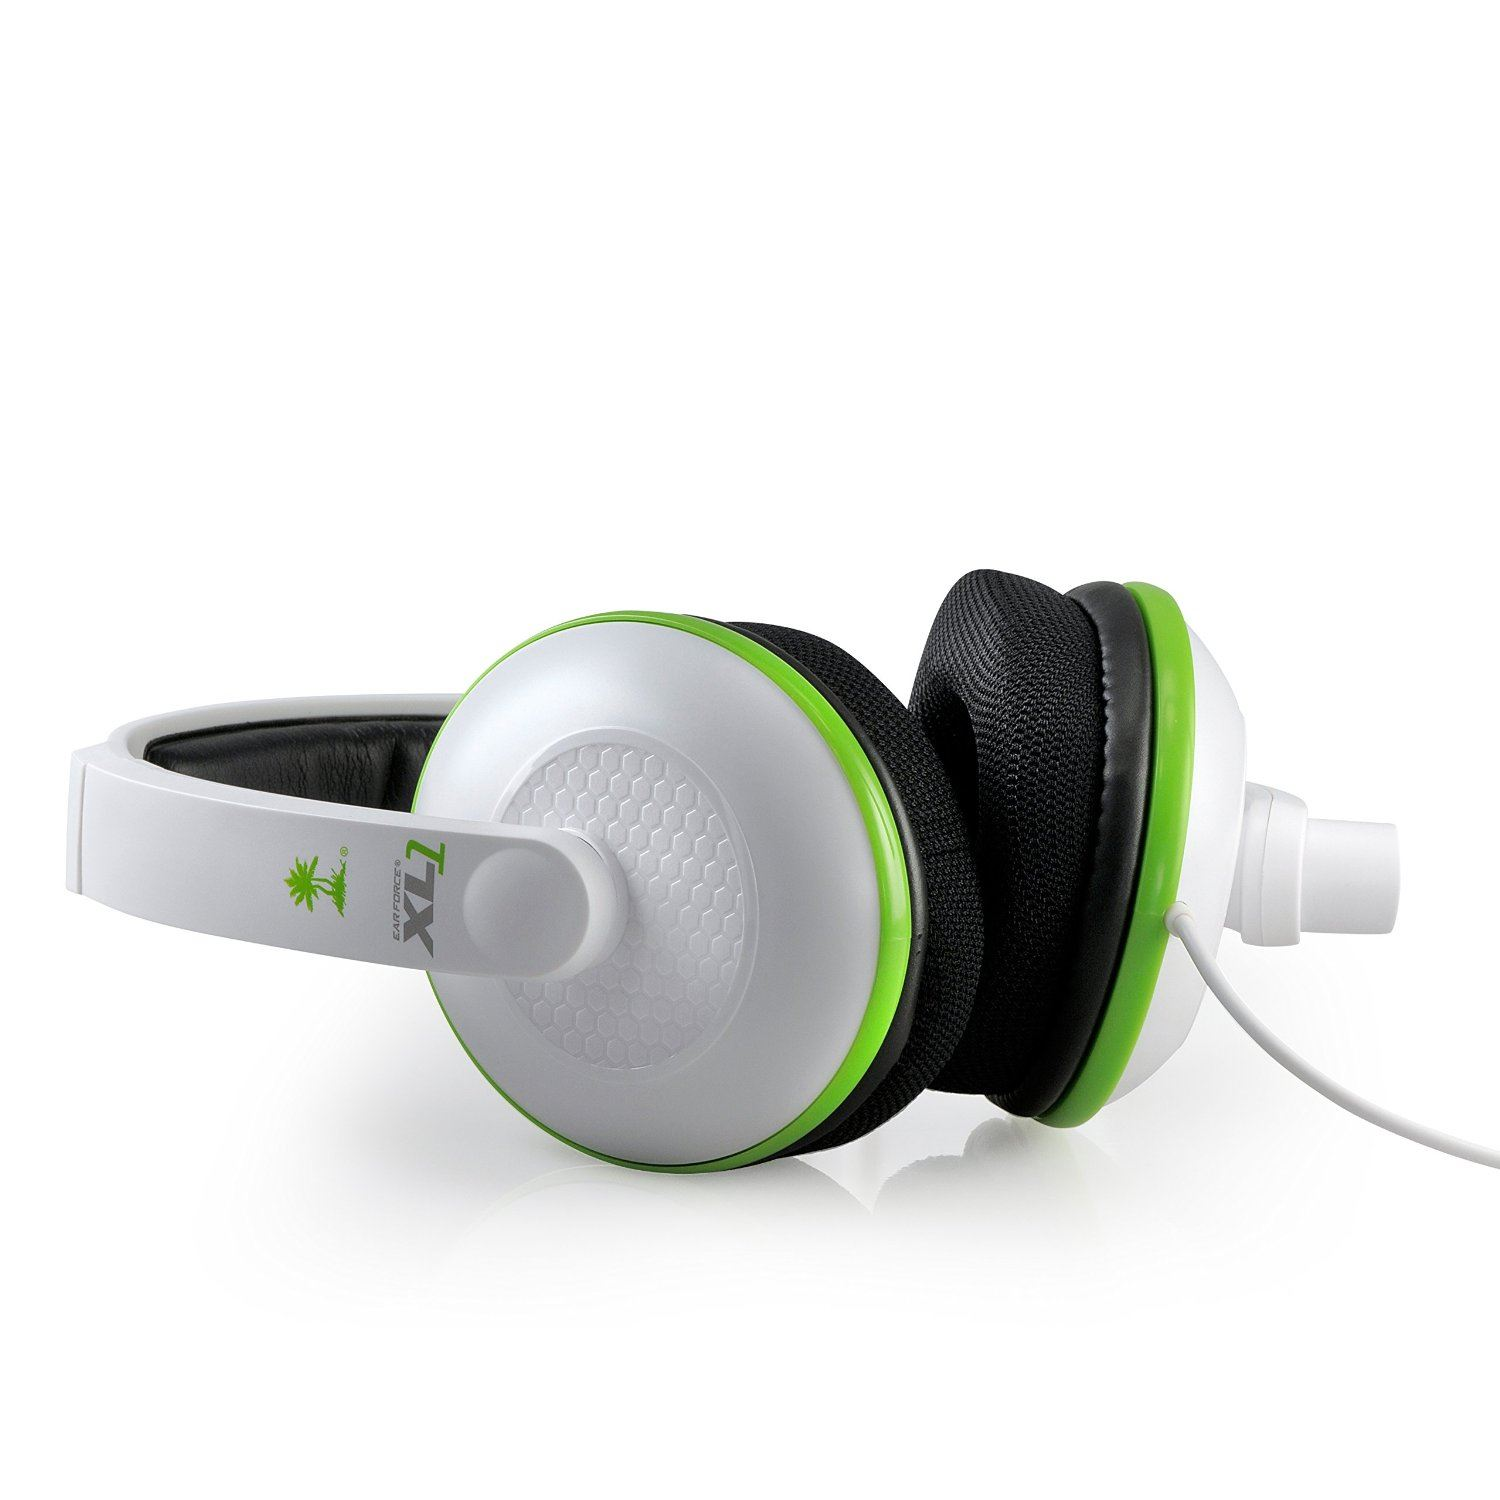 turtle beach xl1 hookup So i bought an xl1 headset for my xbox one the turtle beach website said it would be compatibe, yet i can not hear anything out of the headset.